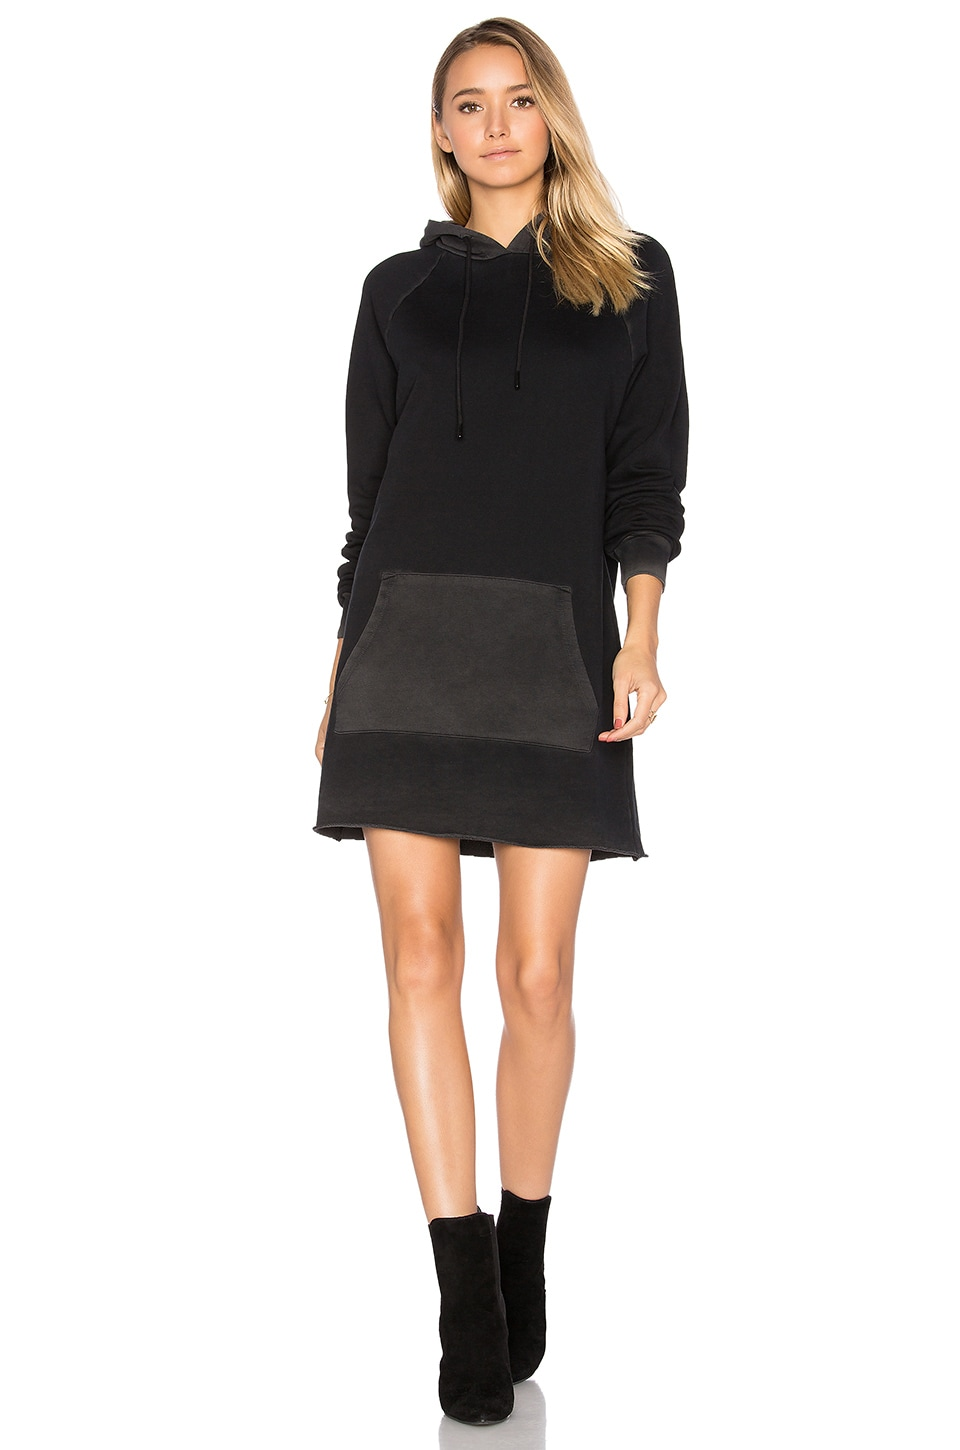 The Milan Long Sleeve Dress